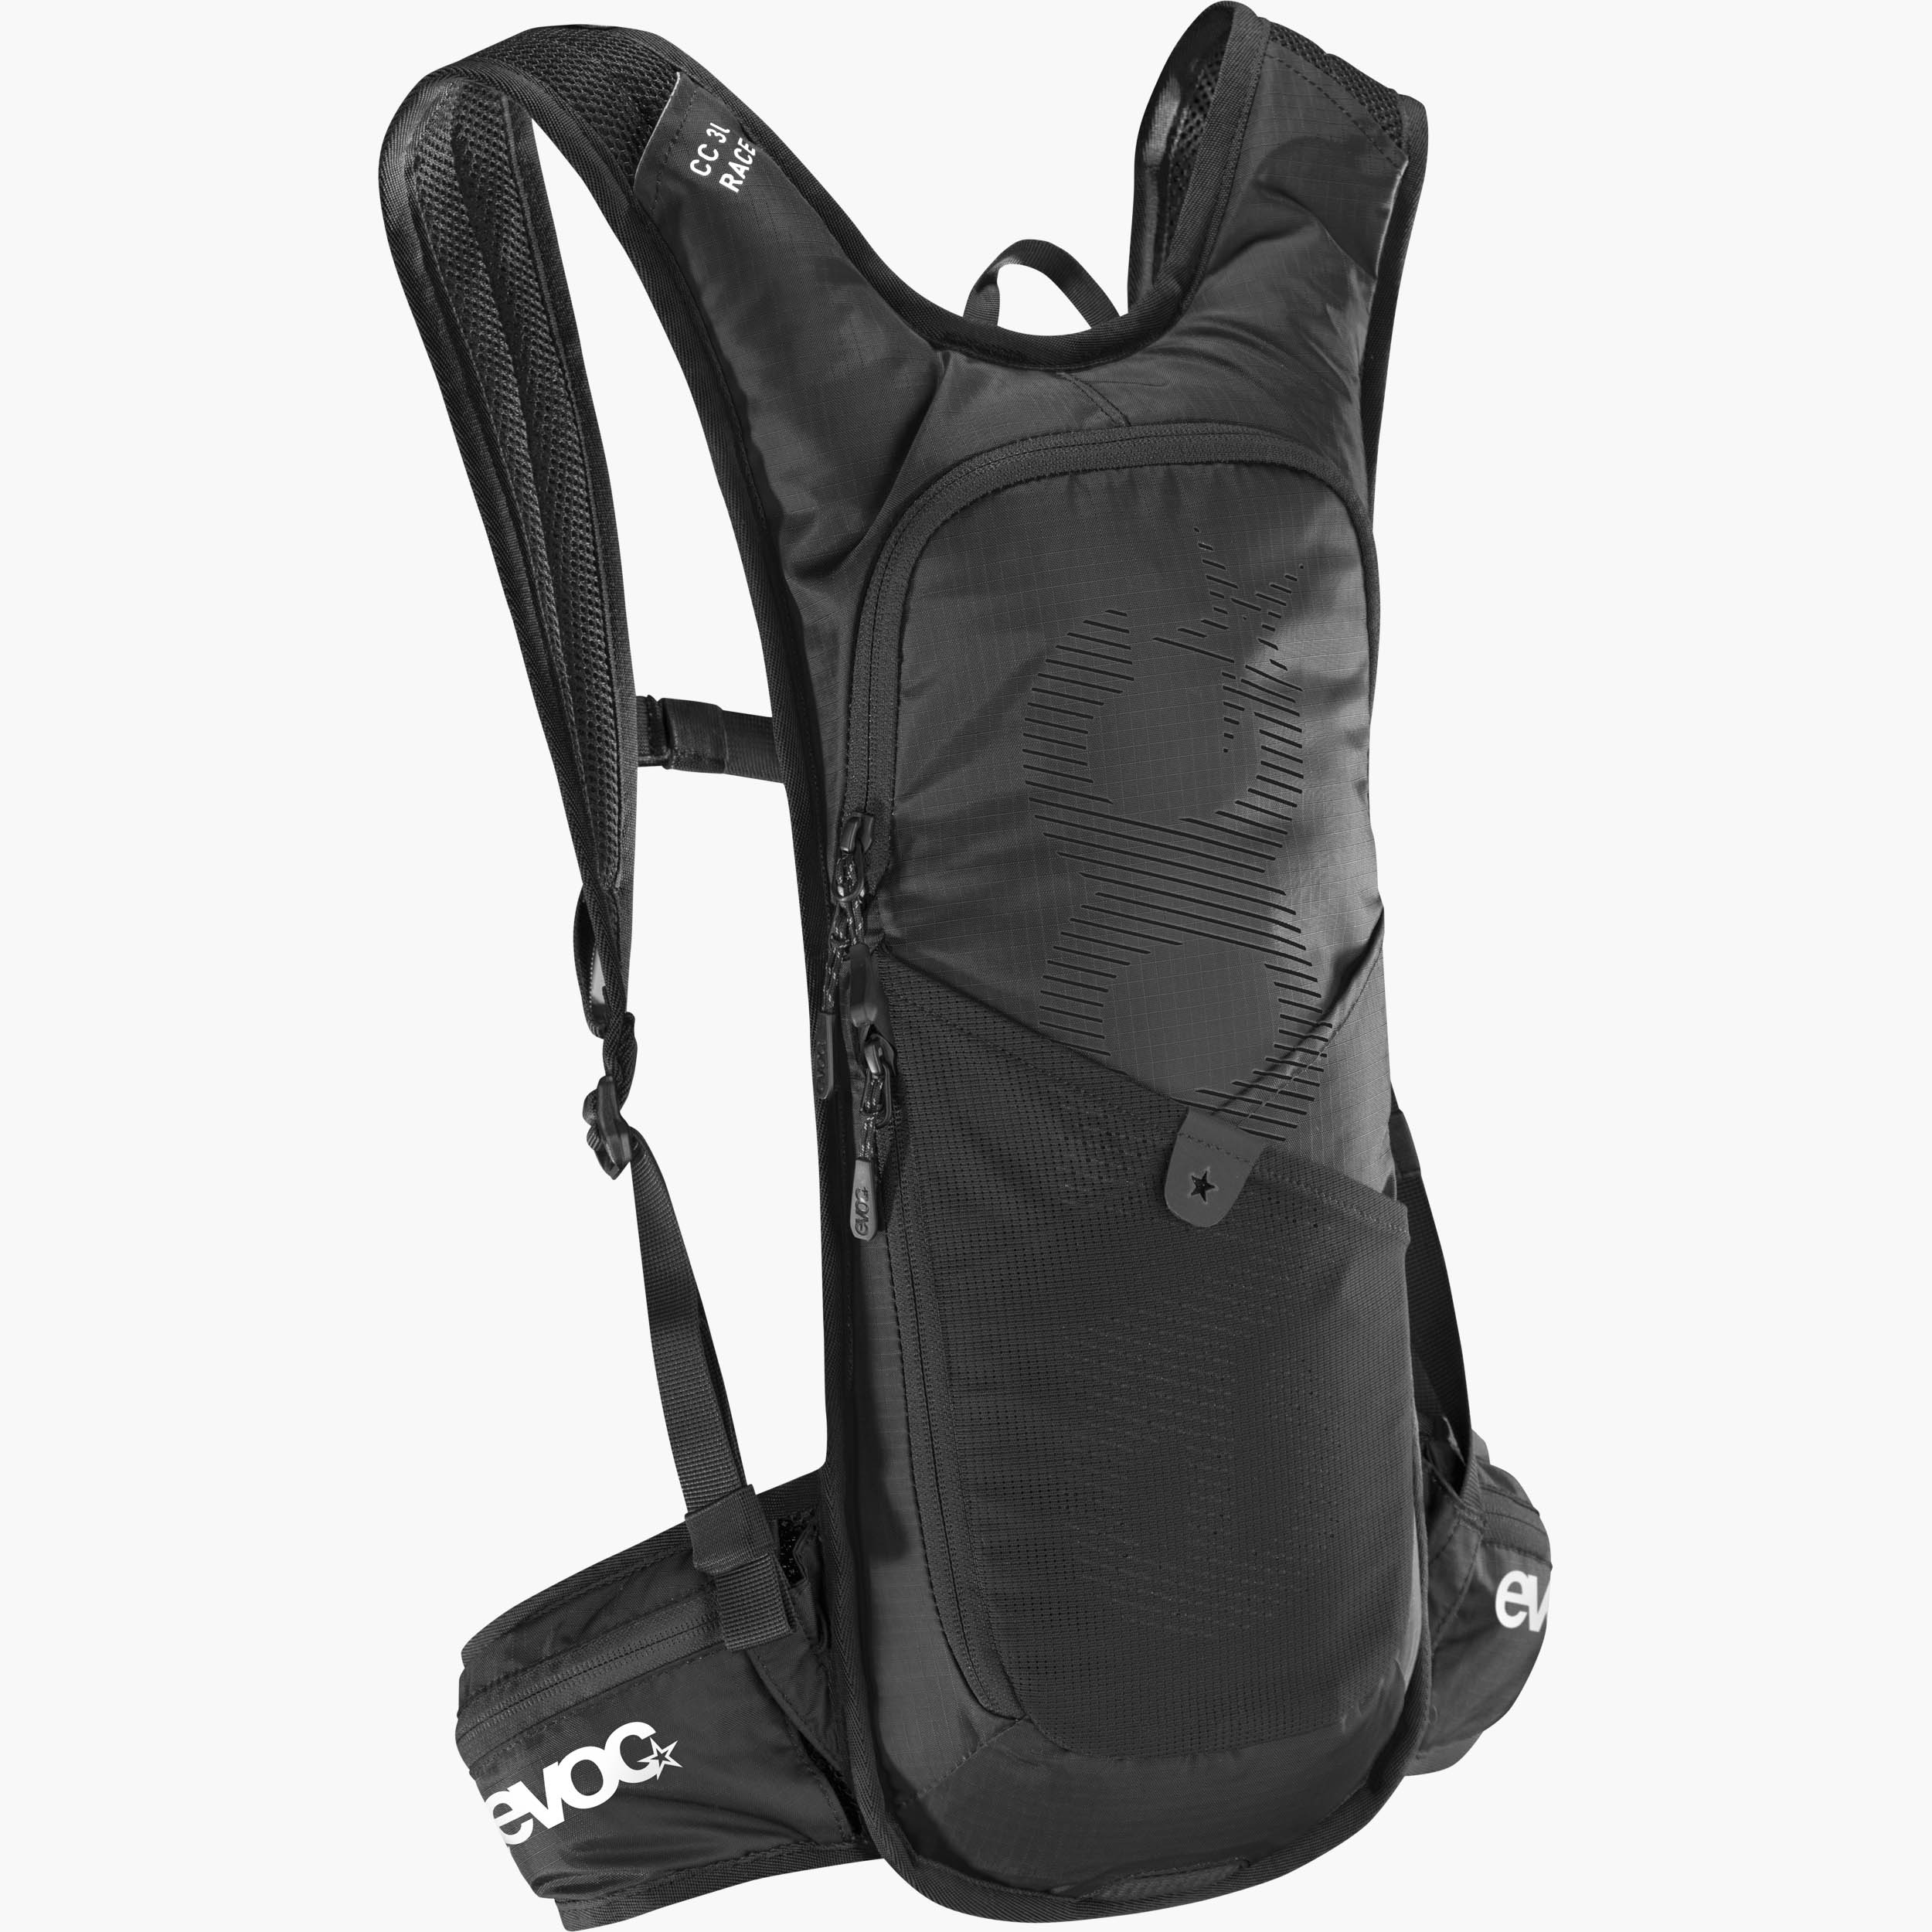 CC 3 RACE + HYDRATION BLADDER 2